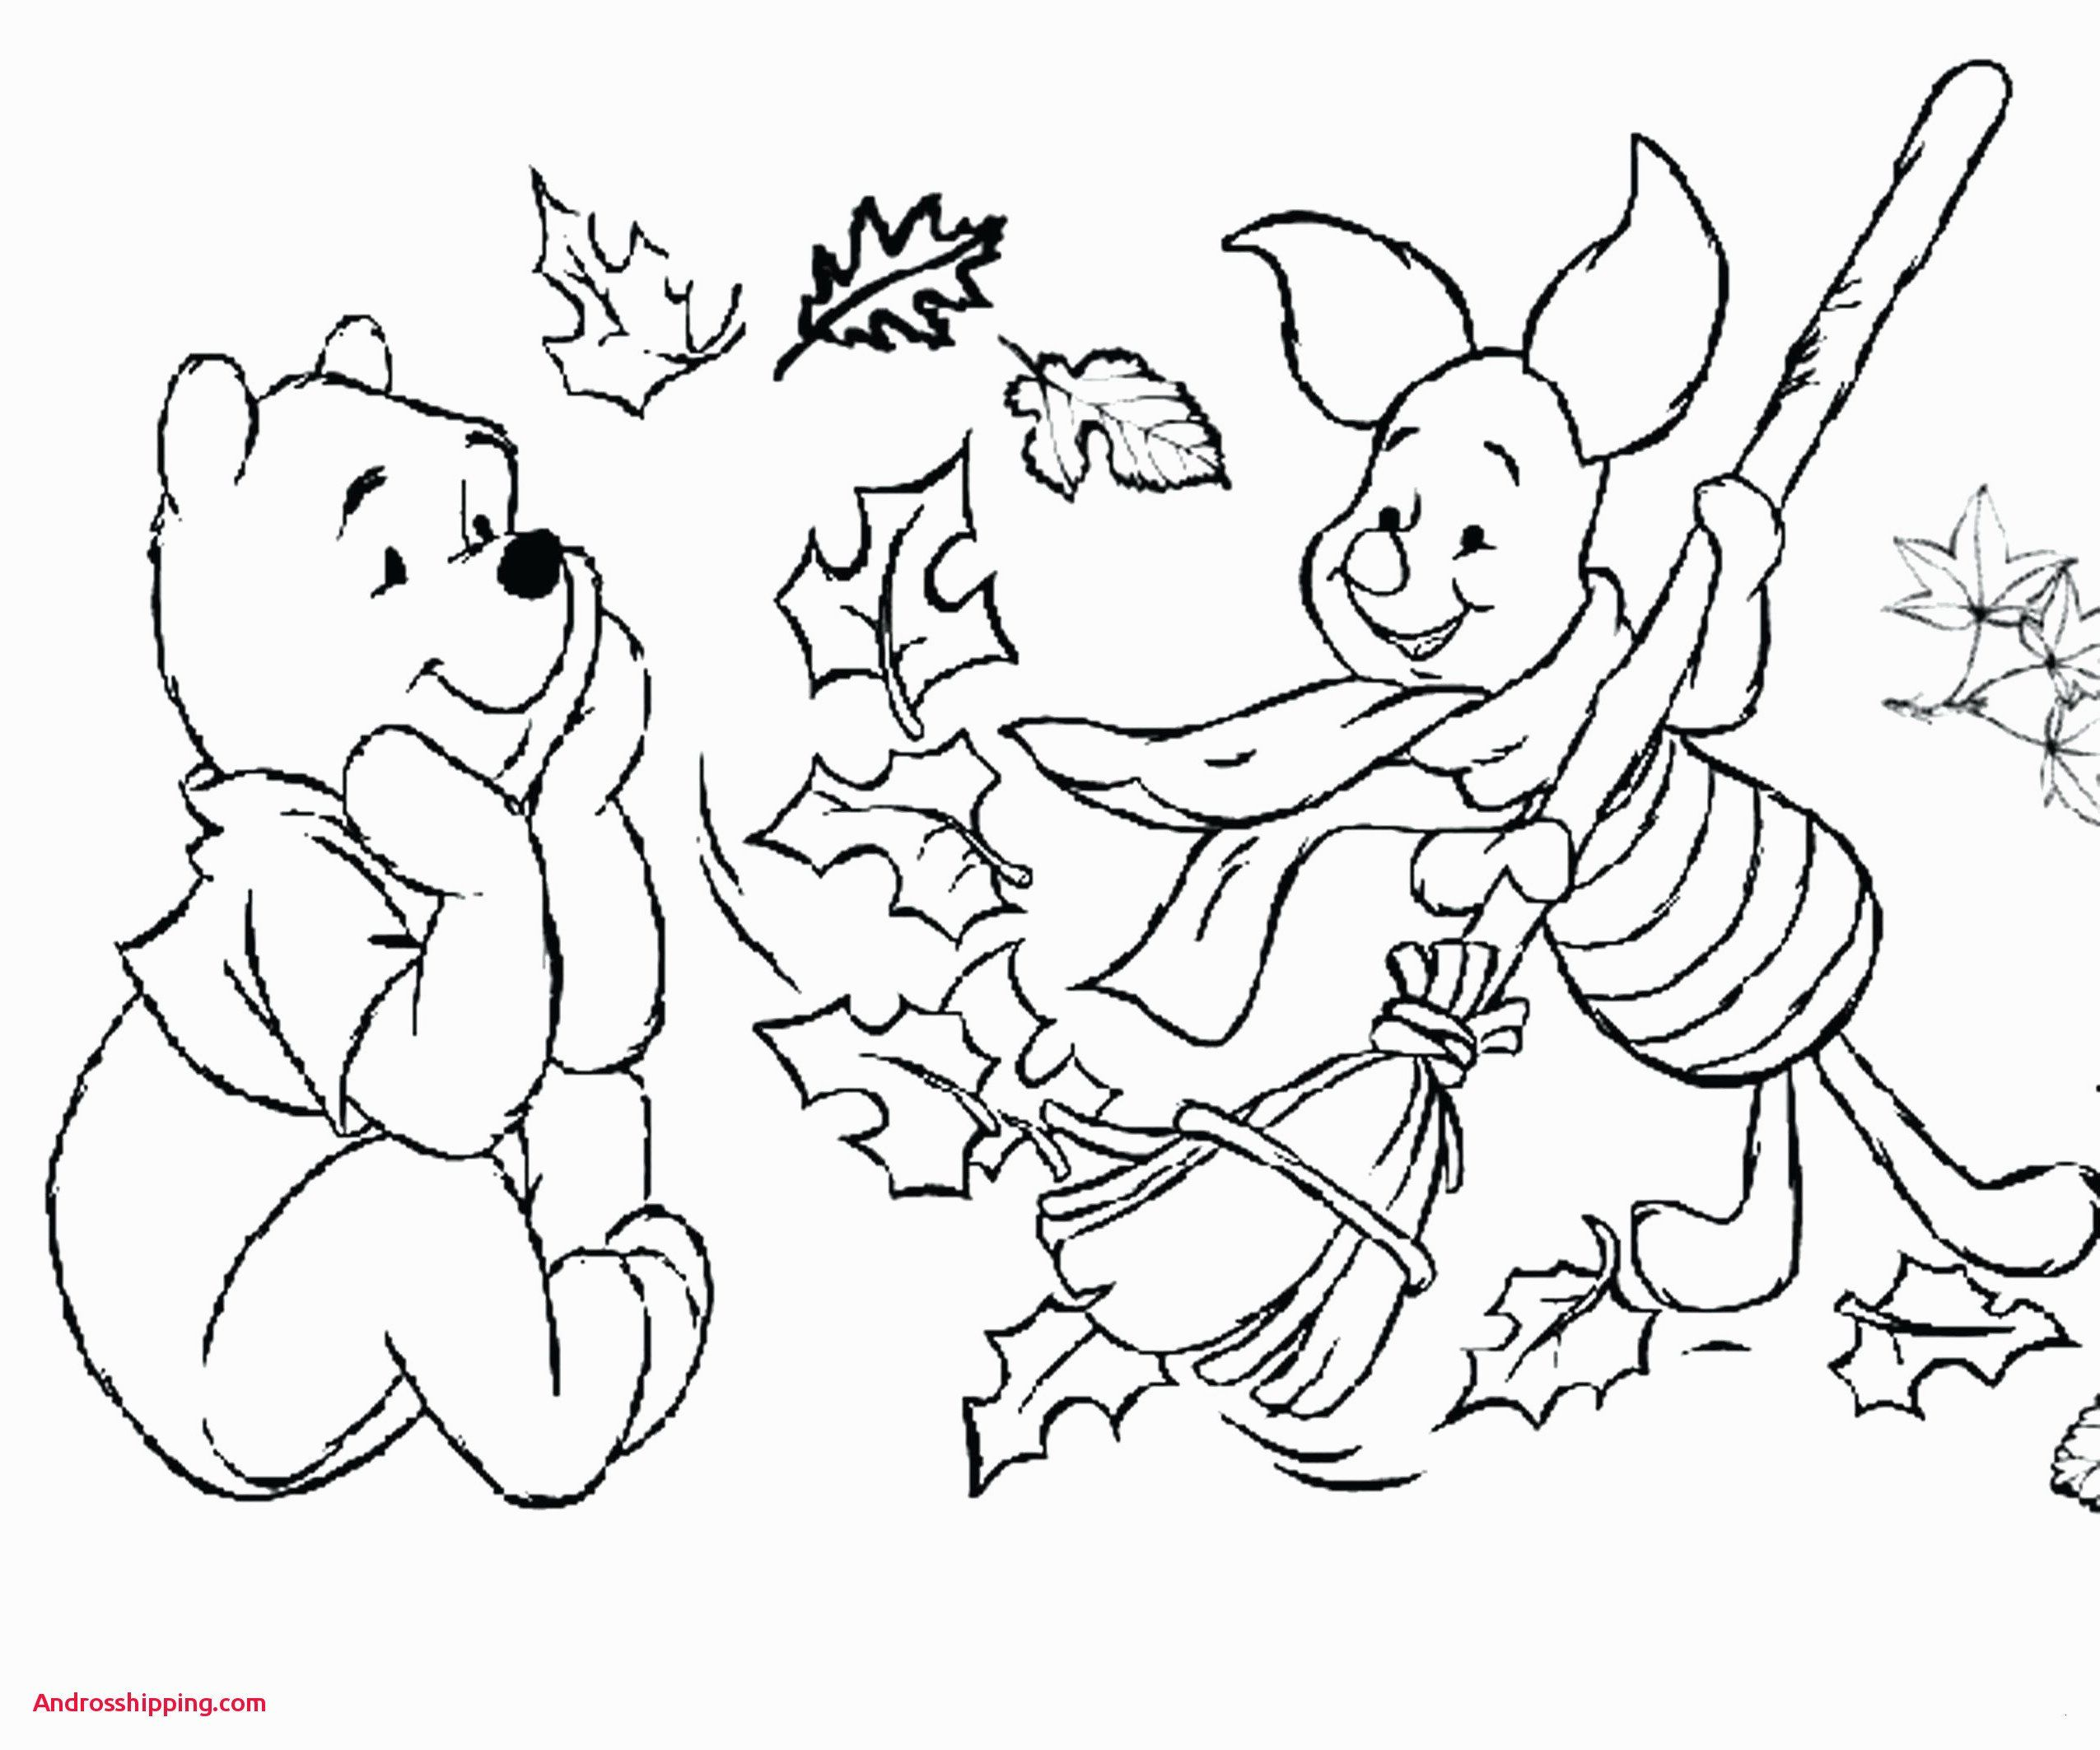 United States Coloring Page Luxury 20 Please Coloring Pages Collection Coloring Sheets Fall Coloring Pages Pumpkin Coloring Pages Fall Coloring Sheets